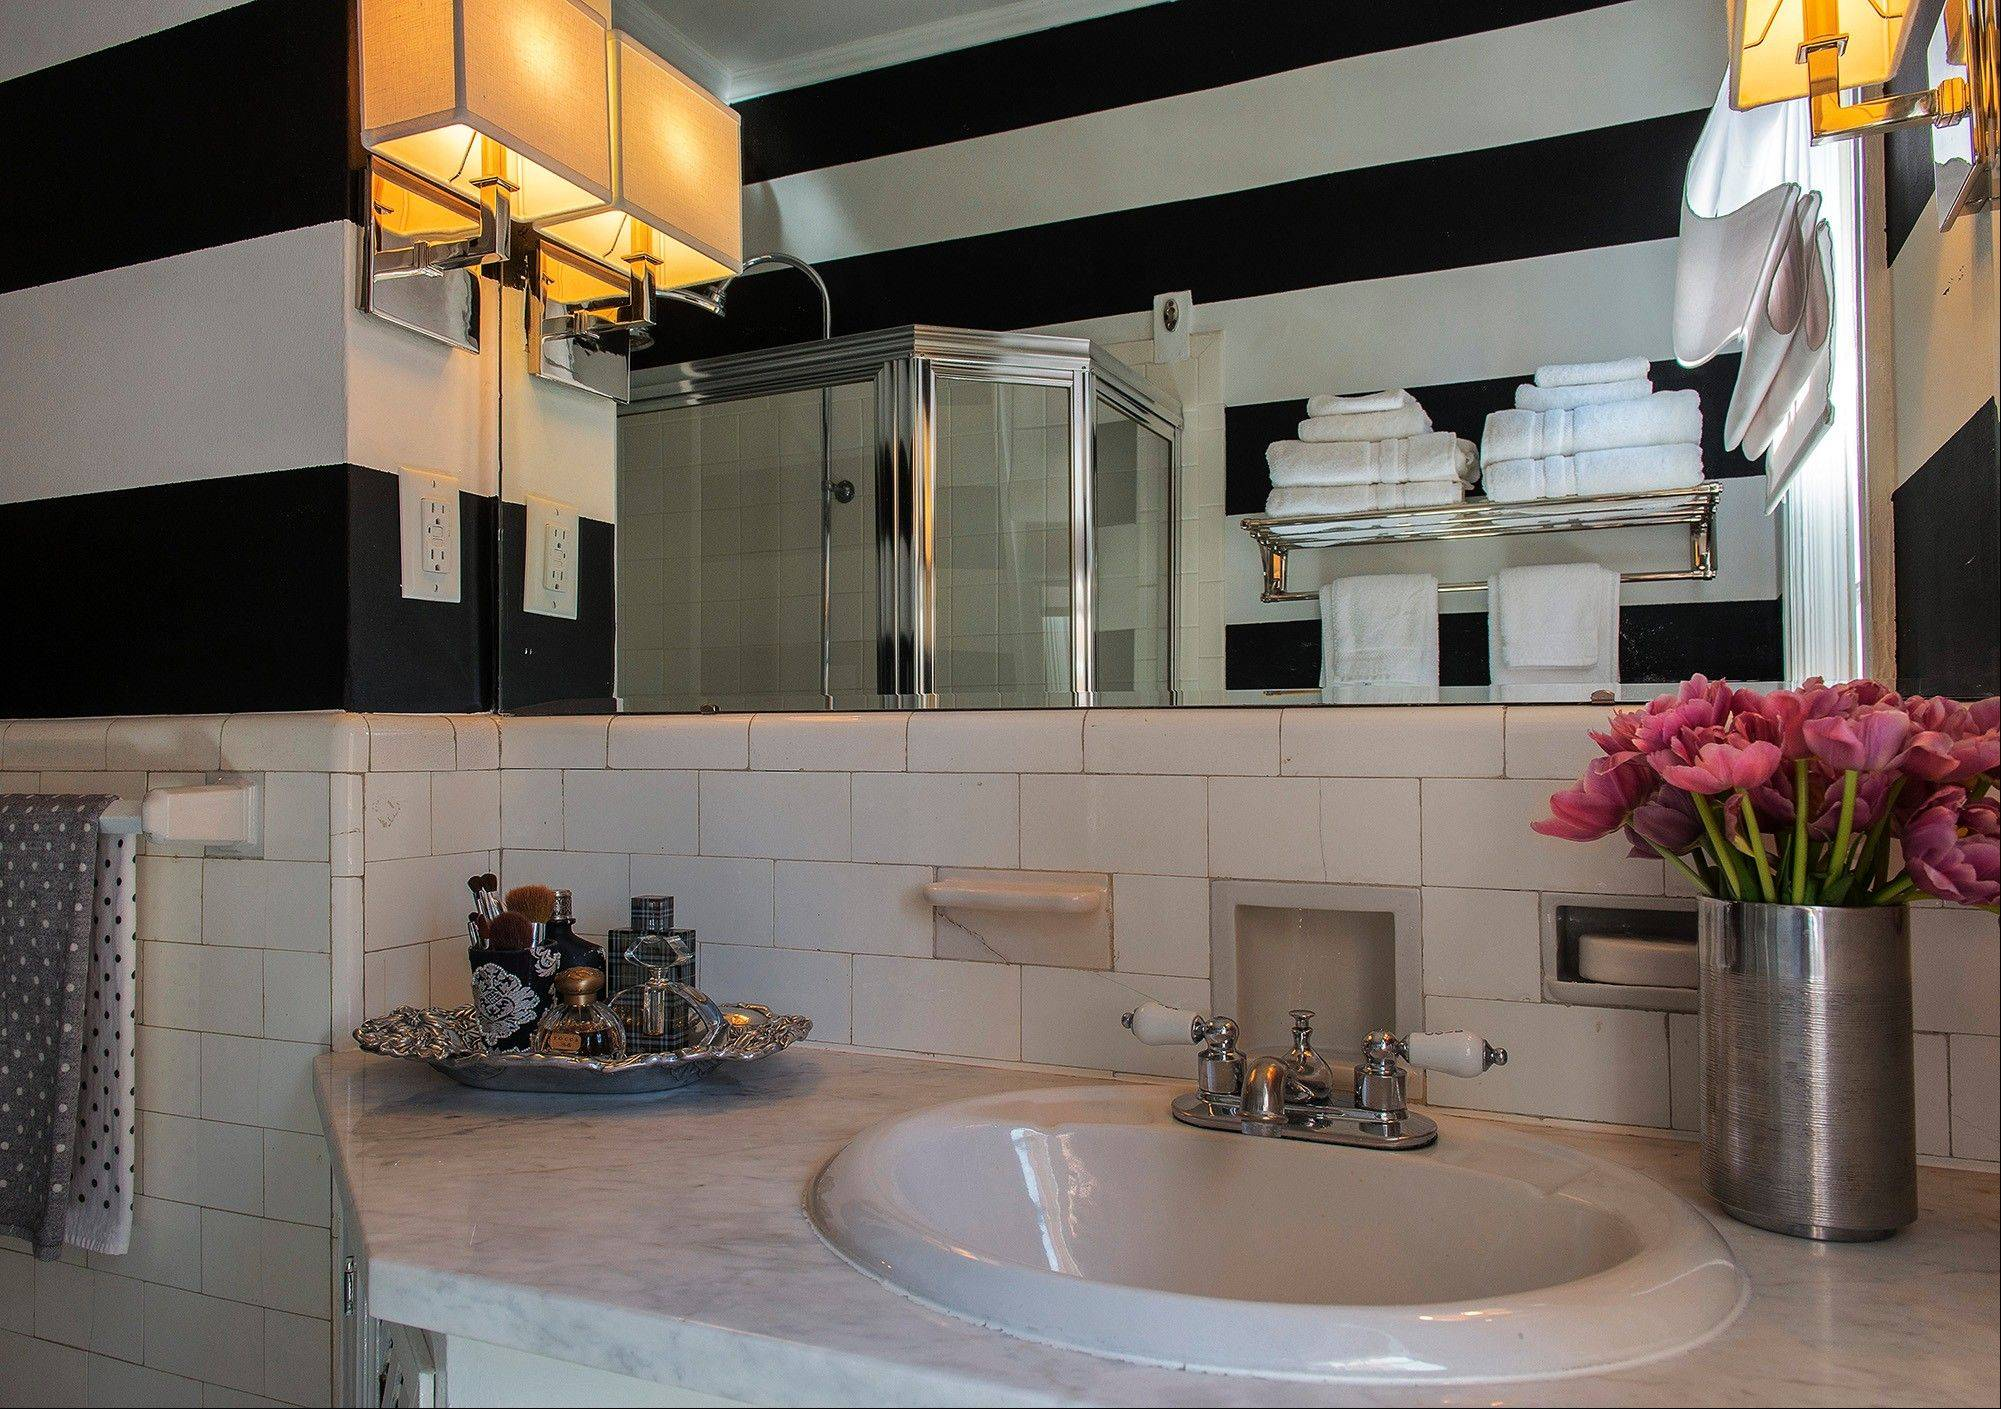 The vintage bathroom in the Kushians� co-op got a budget makeover. The couple painted wide black and white stripes and added new lighting and a towel bar.